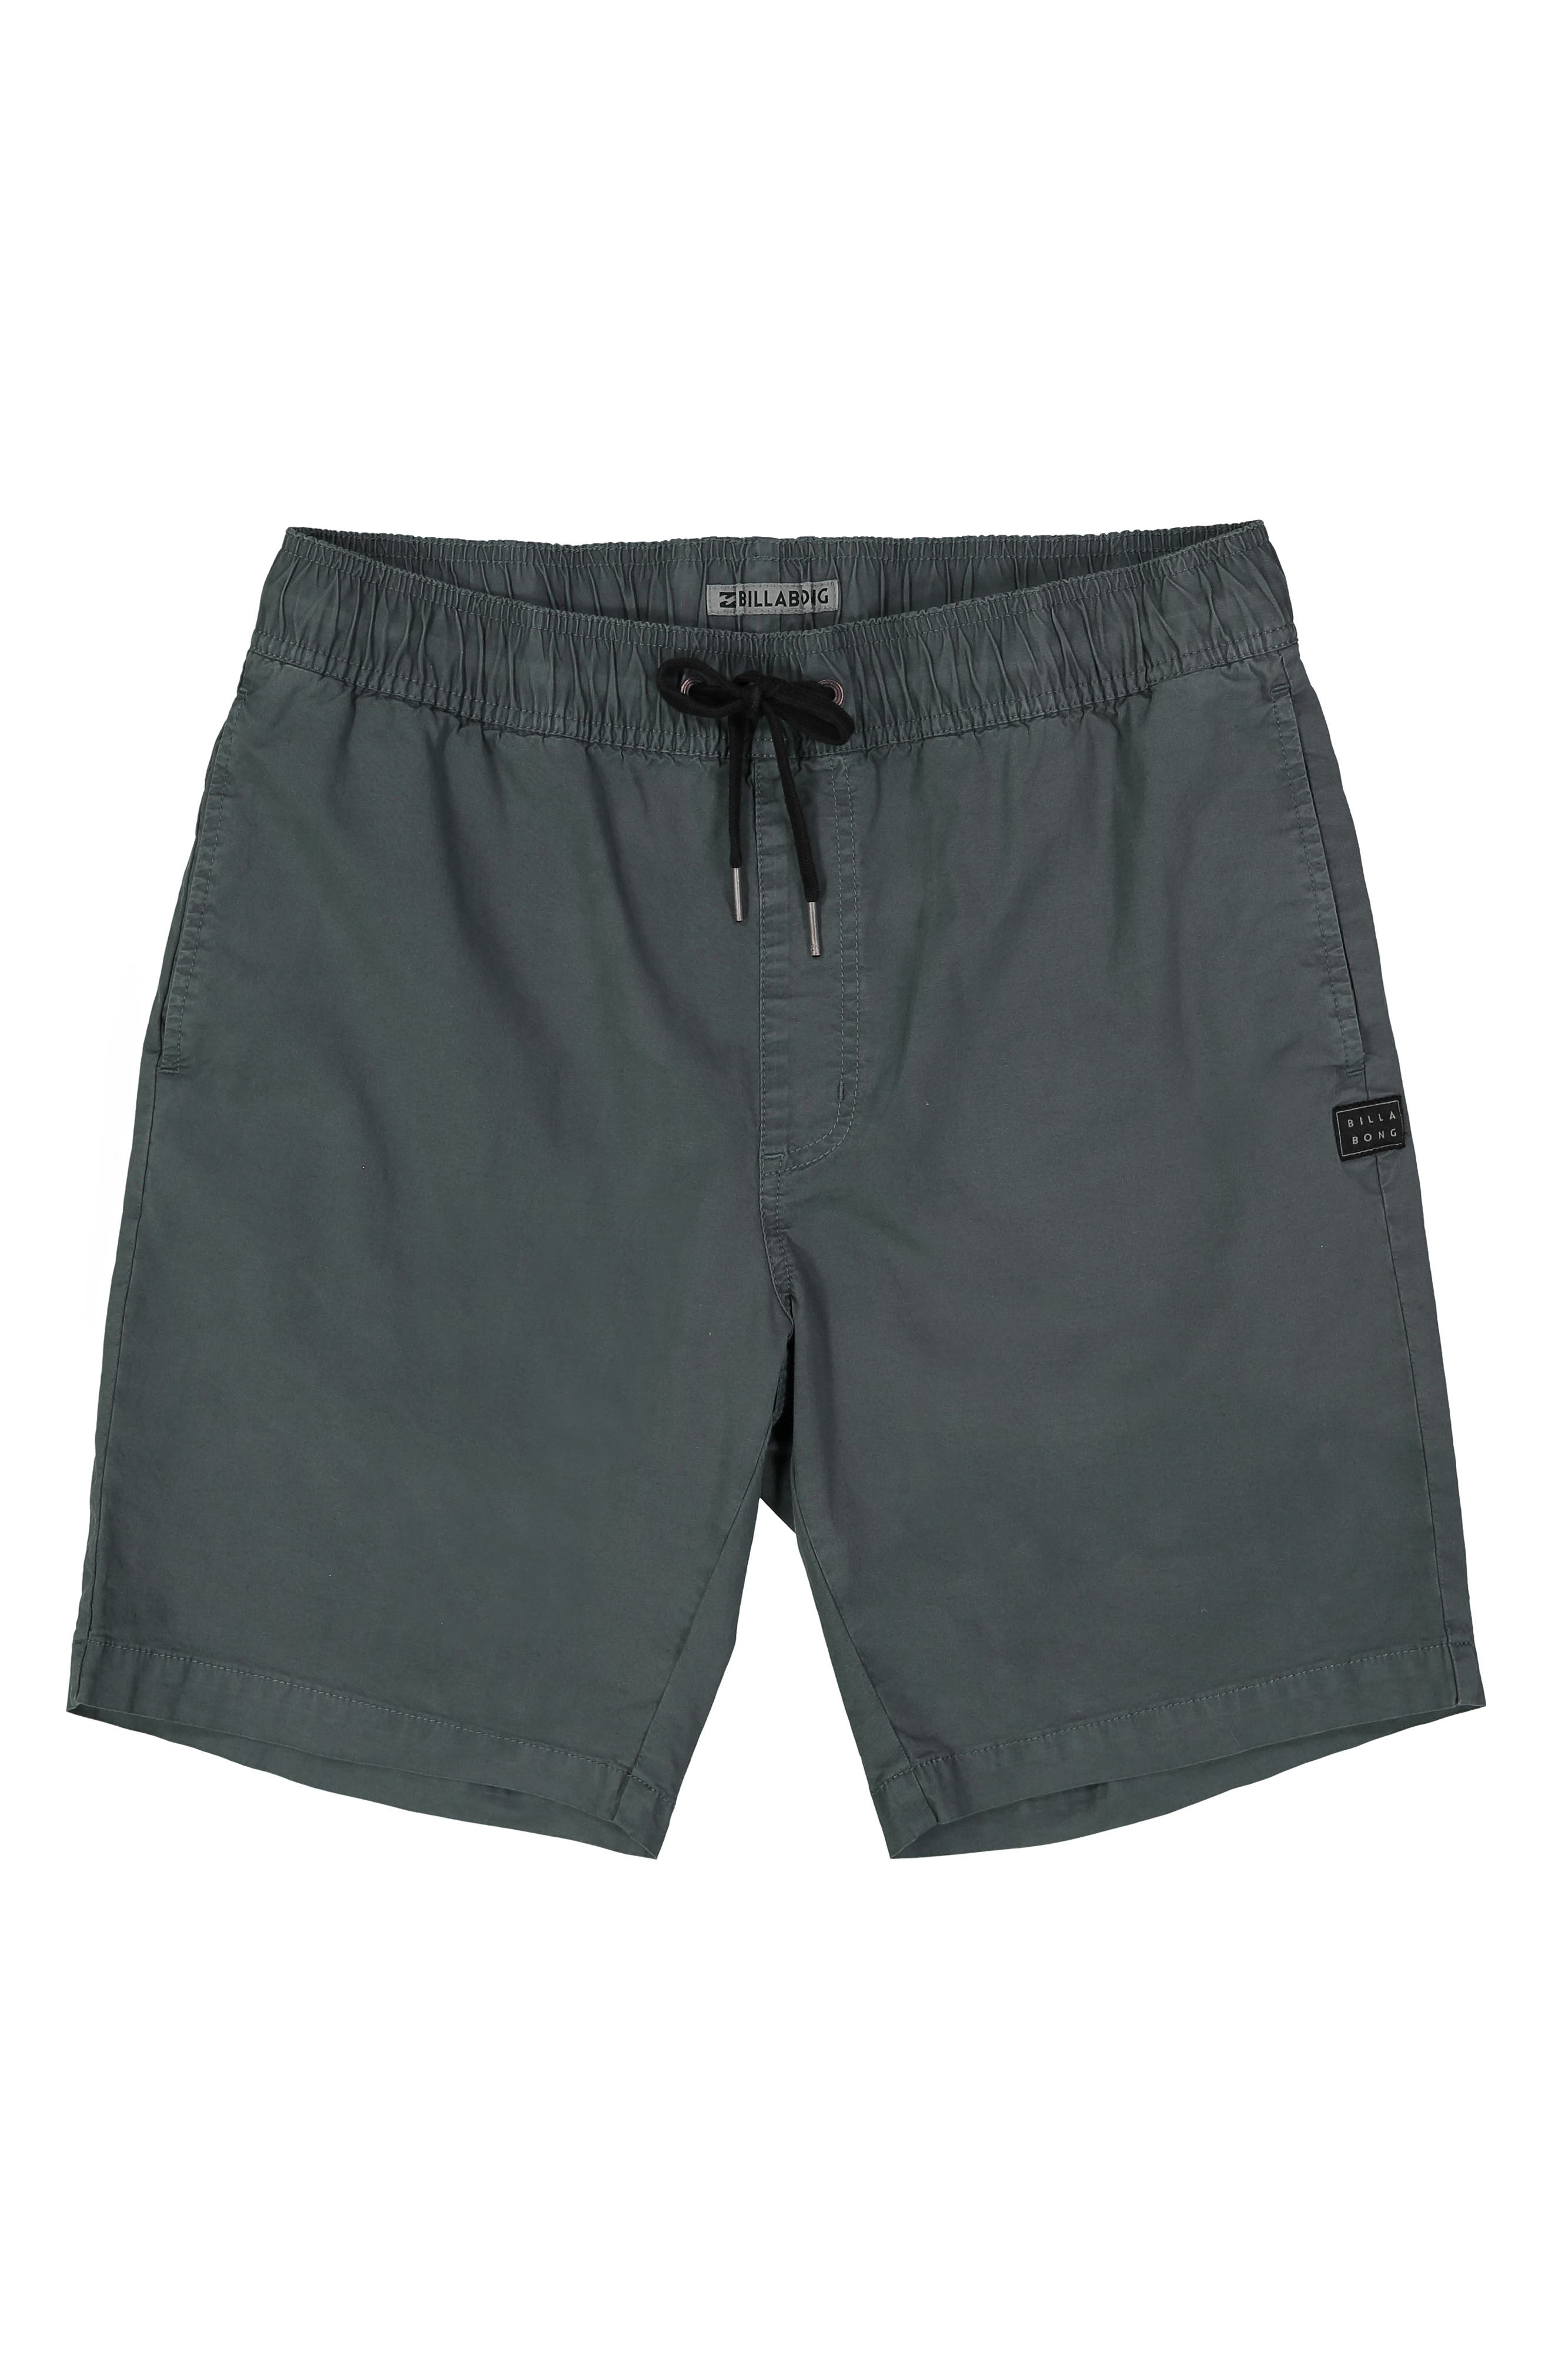 BILLABONG Larry Layback Stretch Cotton Shorts, Main, color, WASHED SLATE